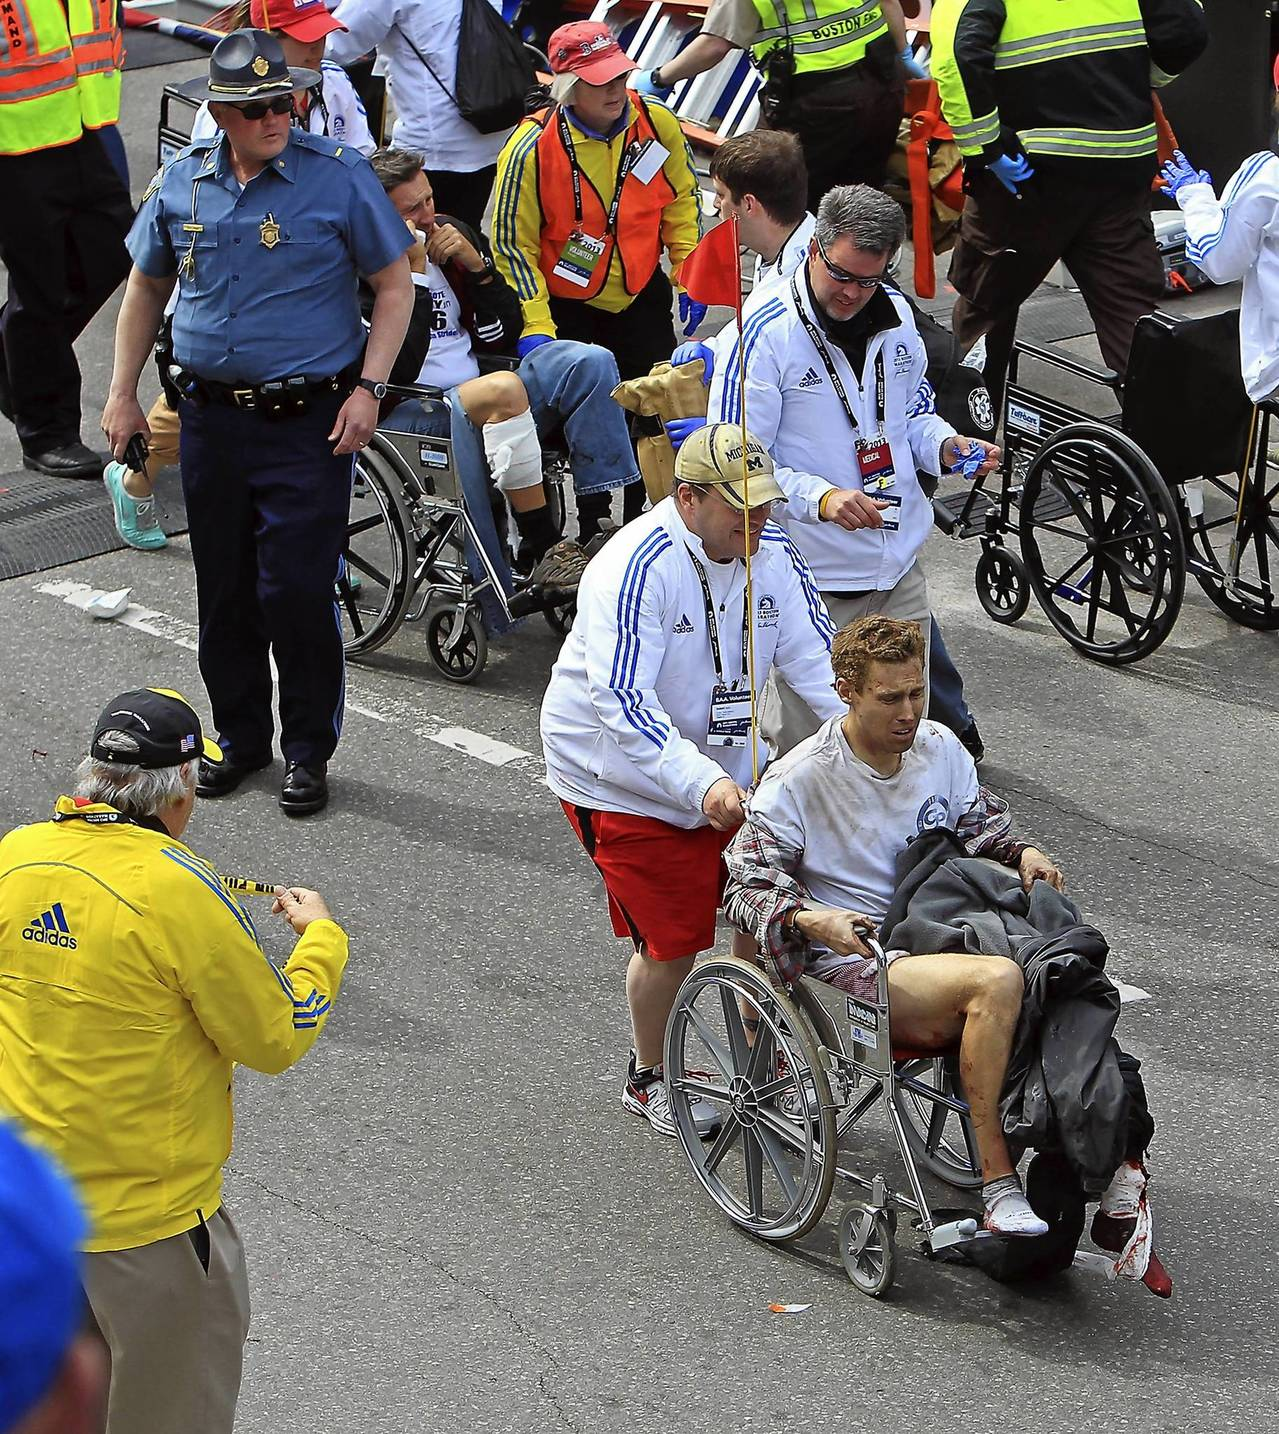 Victims of the bomb blast during the Boston Marathon are assisted in Boston, Massachusetts.